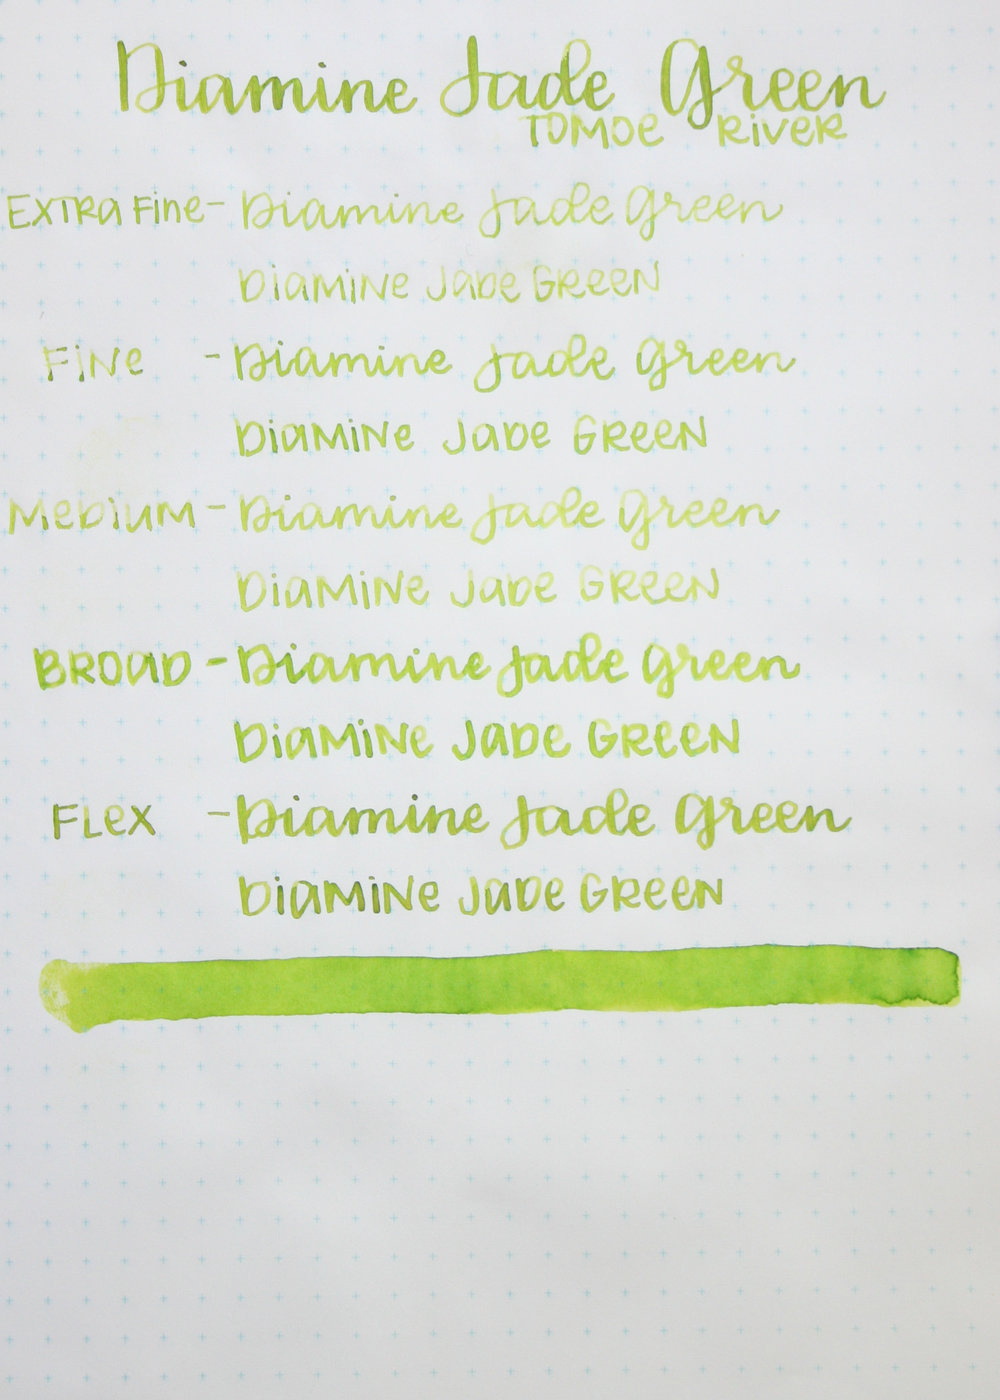 DiamineJadeGreen-023.jpg